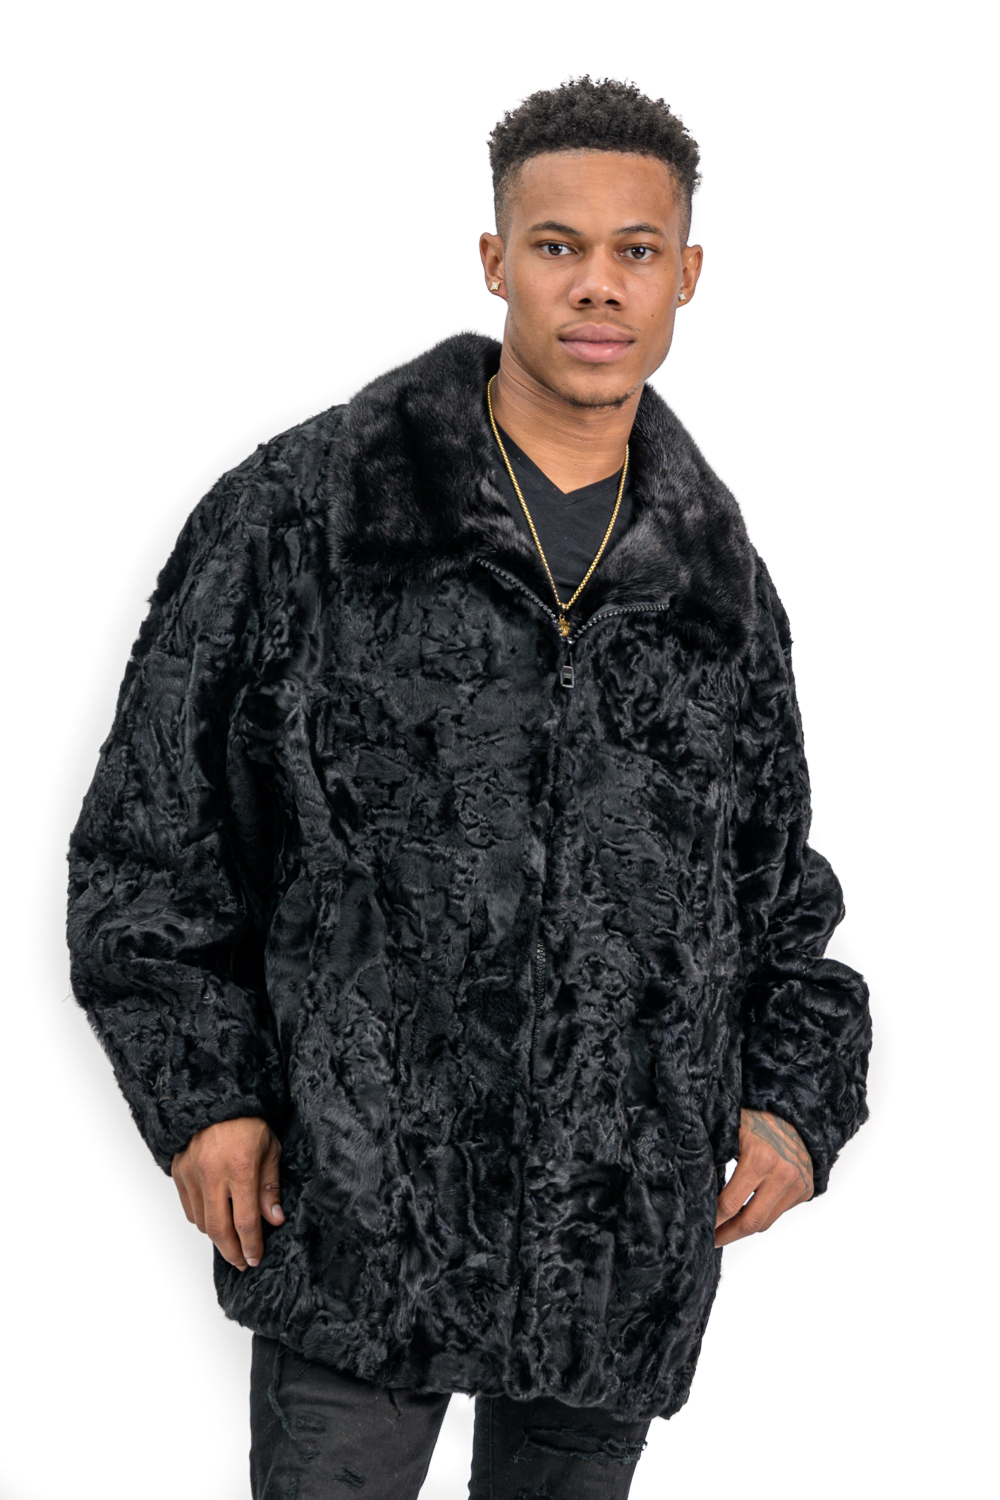 M20 2 Mans Persian Lamb Jacket